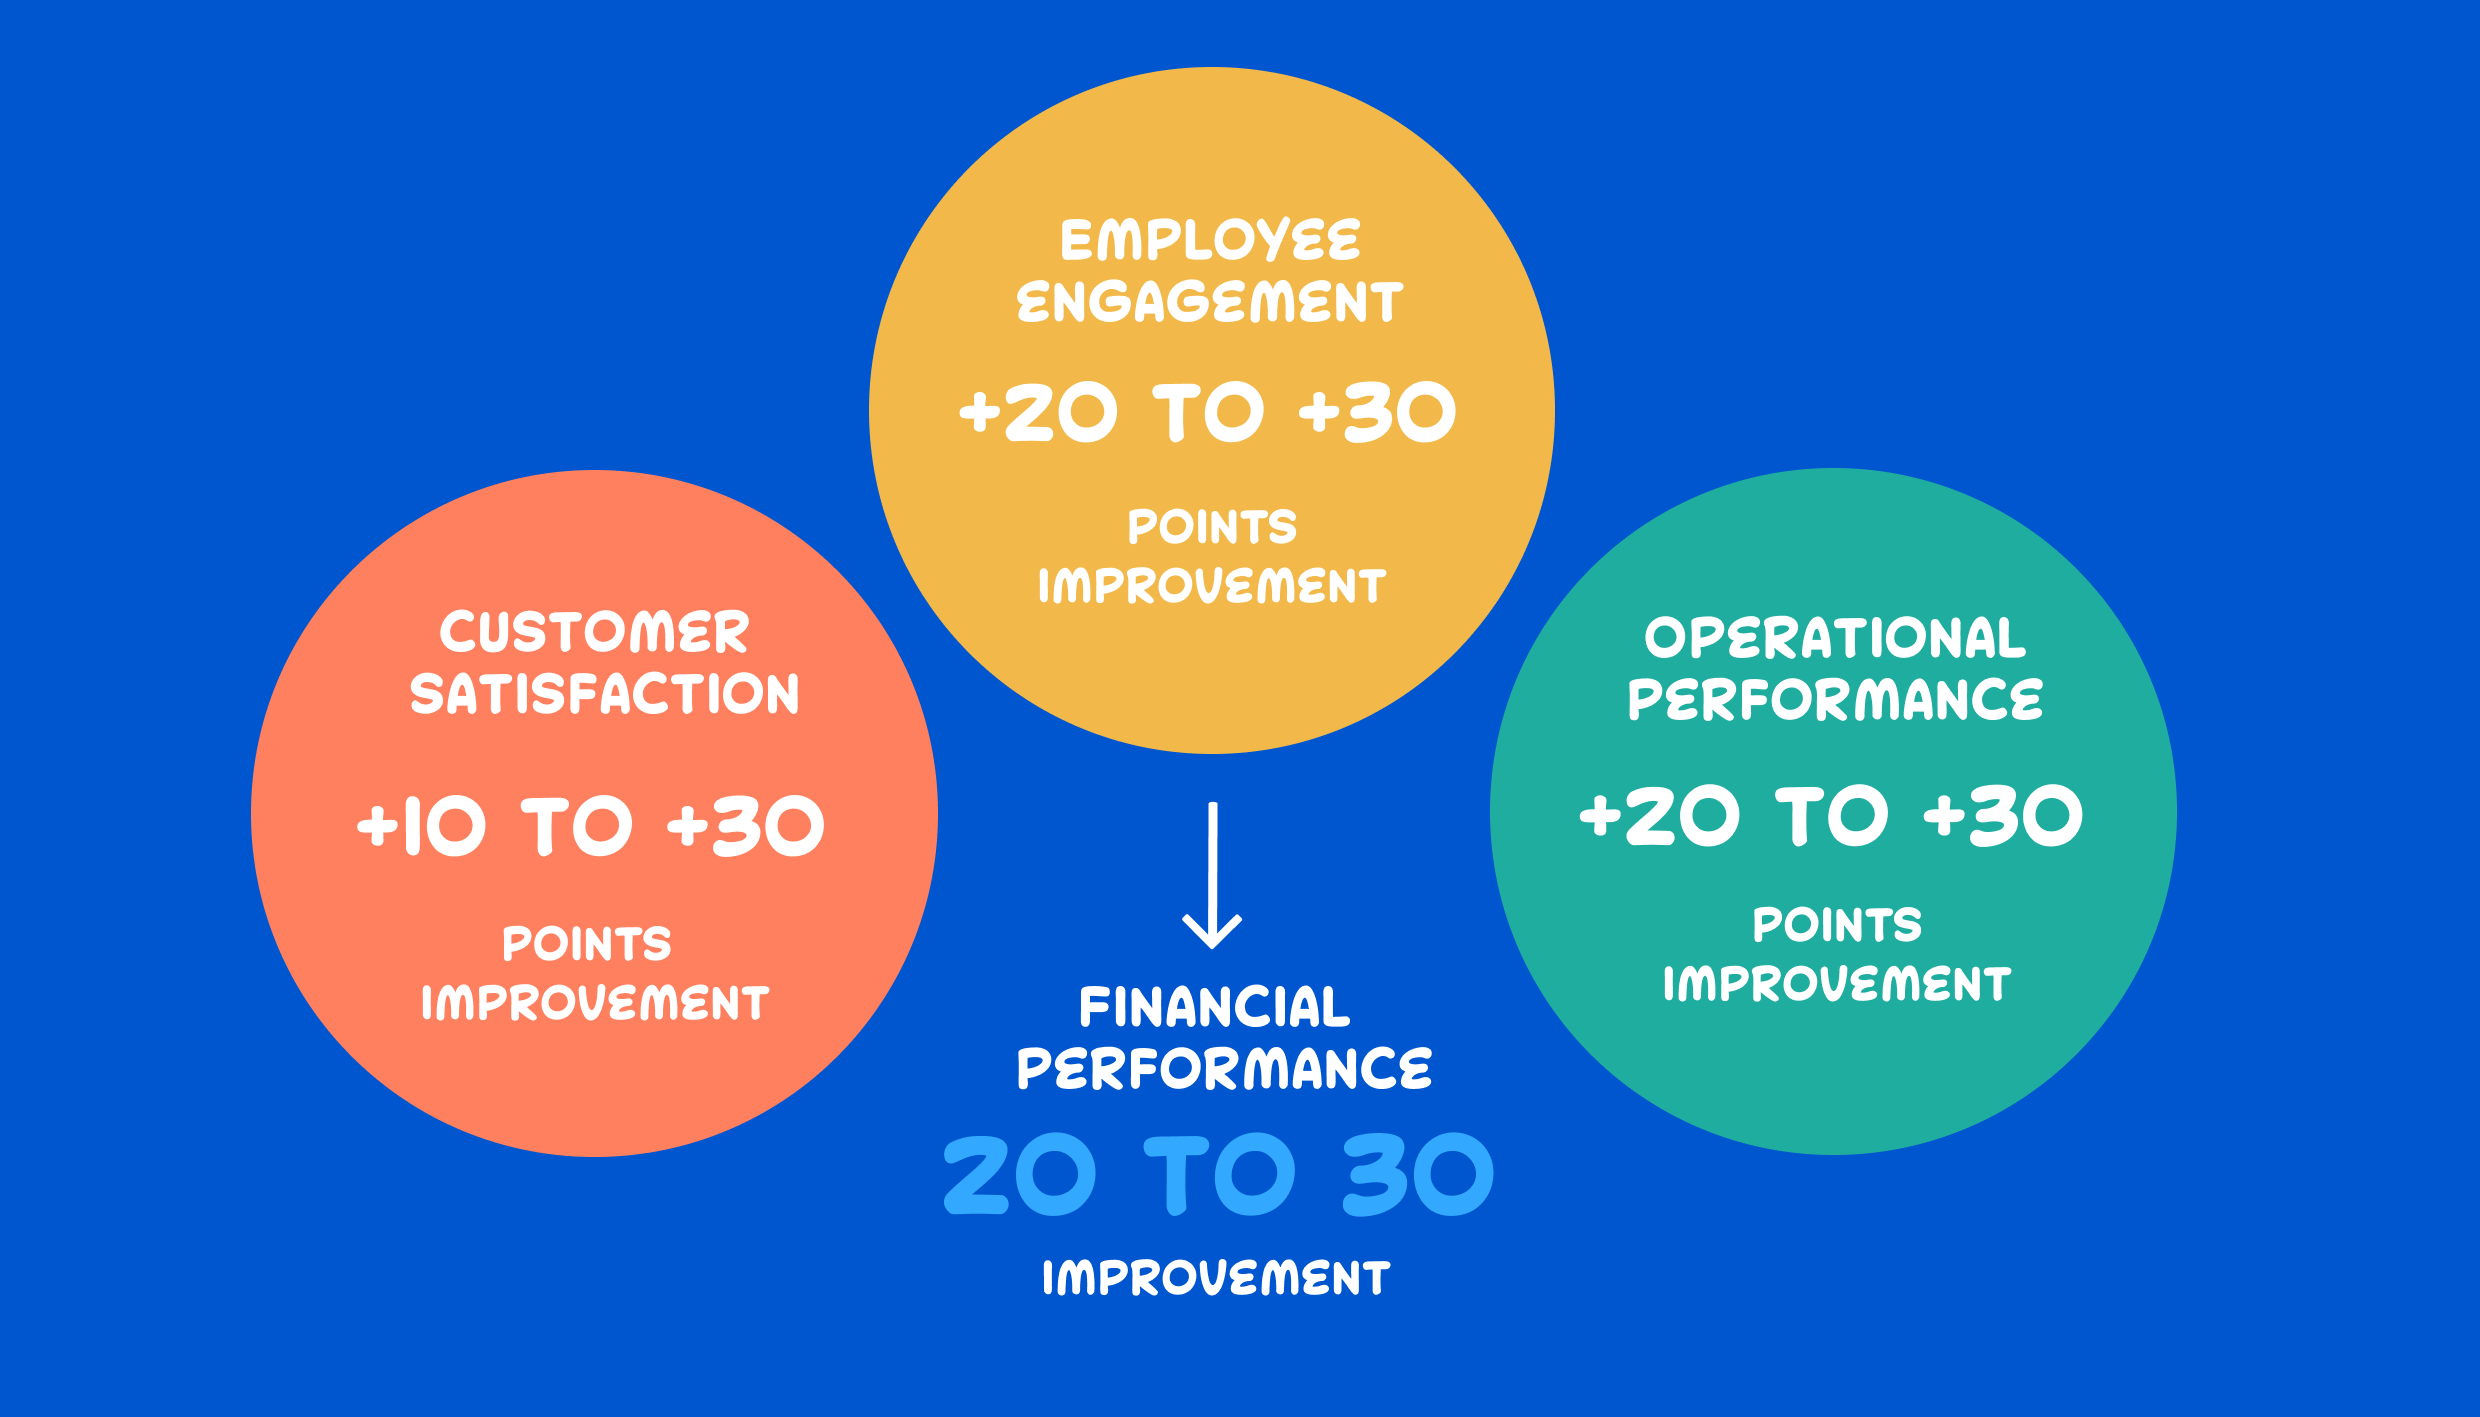 How agility improves operational performance and employee engagement